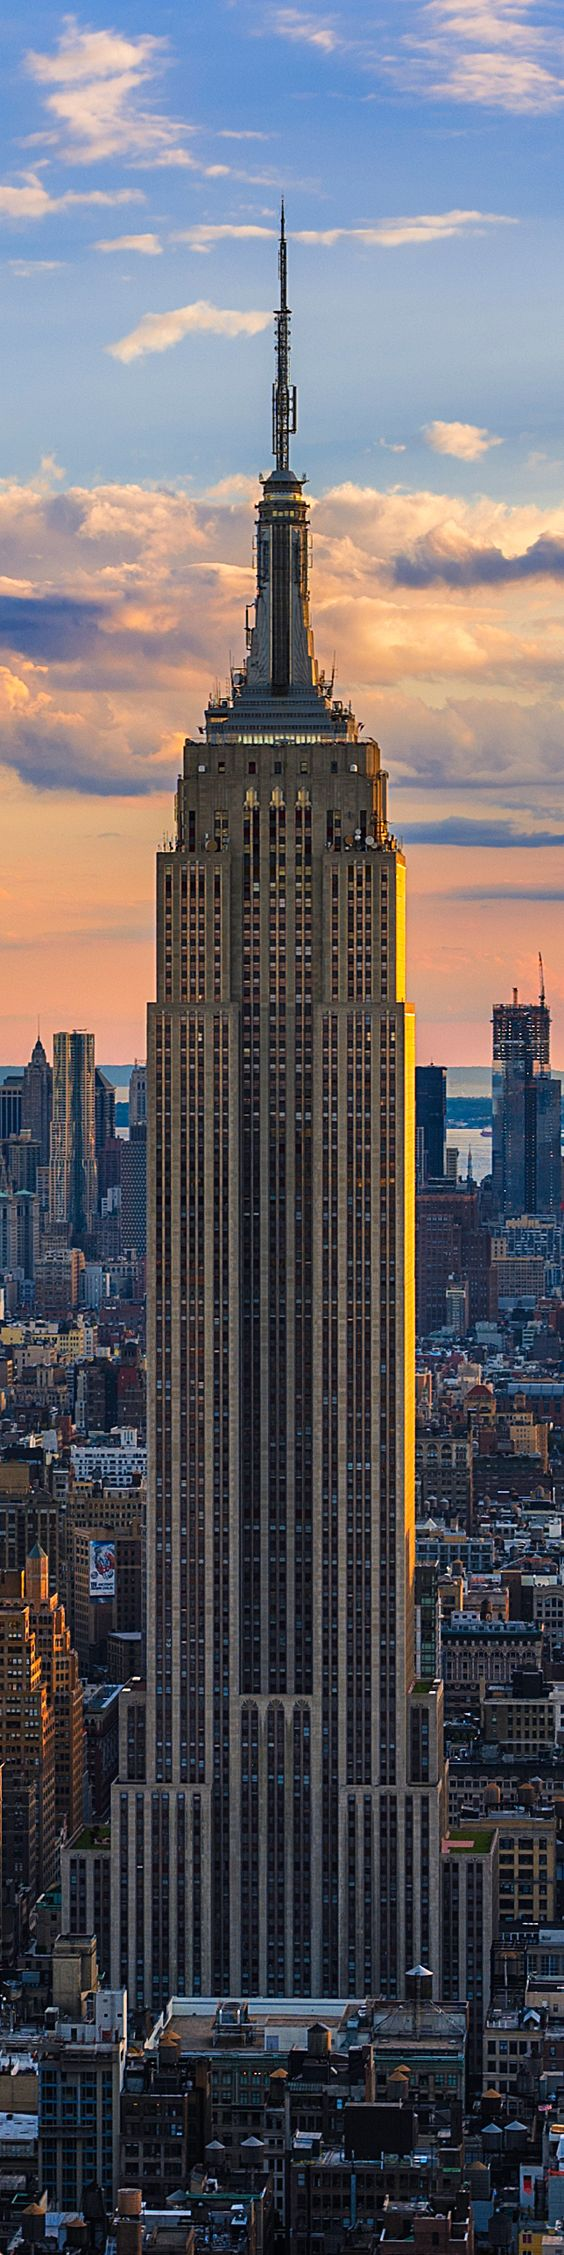 Empire State Building (New York, New York). More photos at http://jamesclear.com/photography